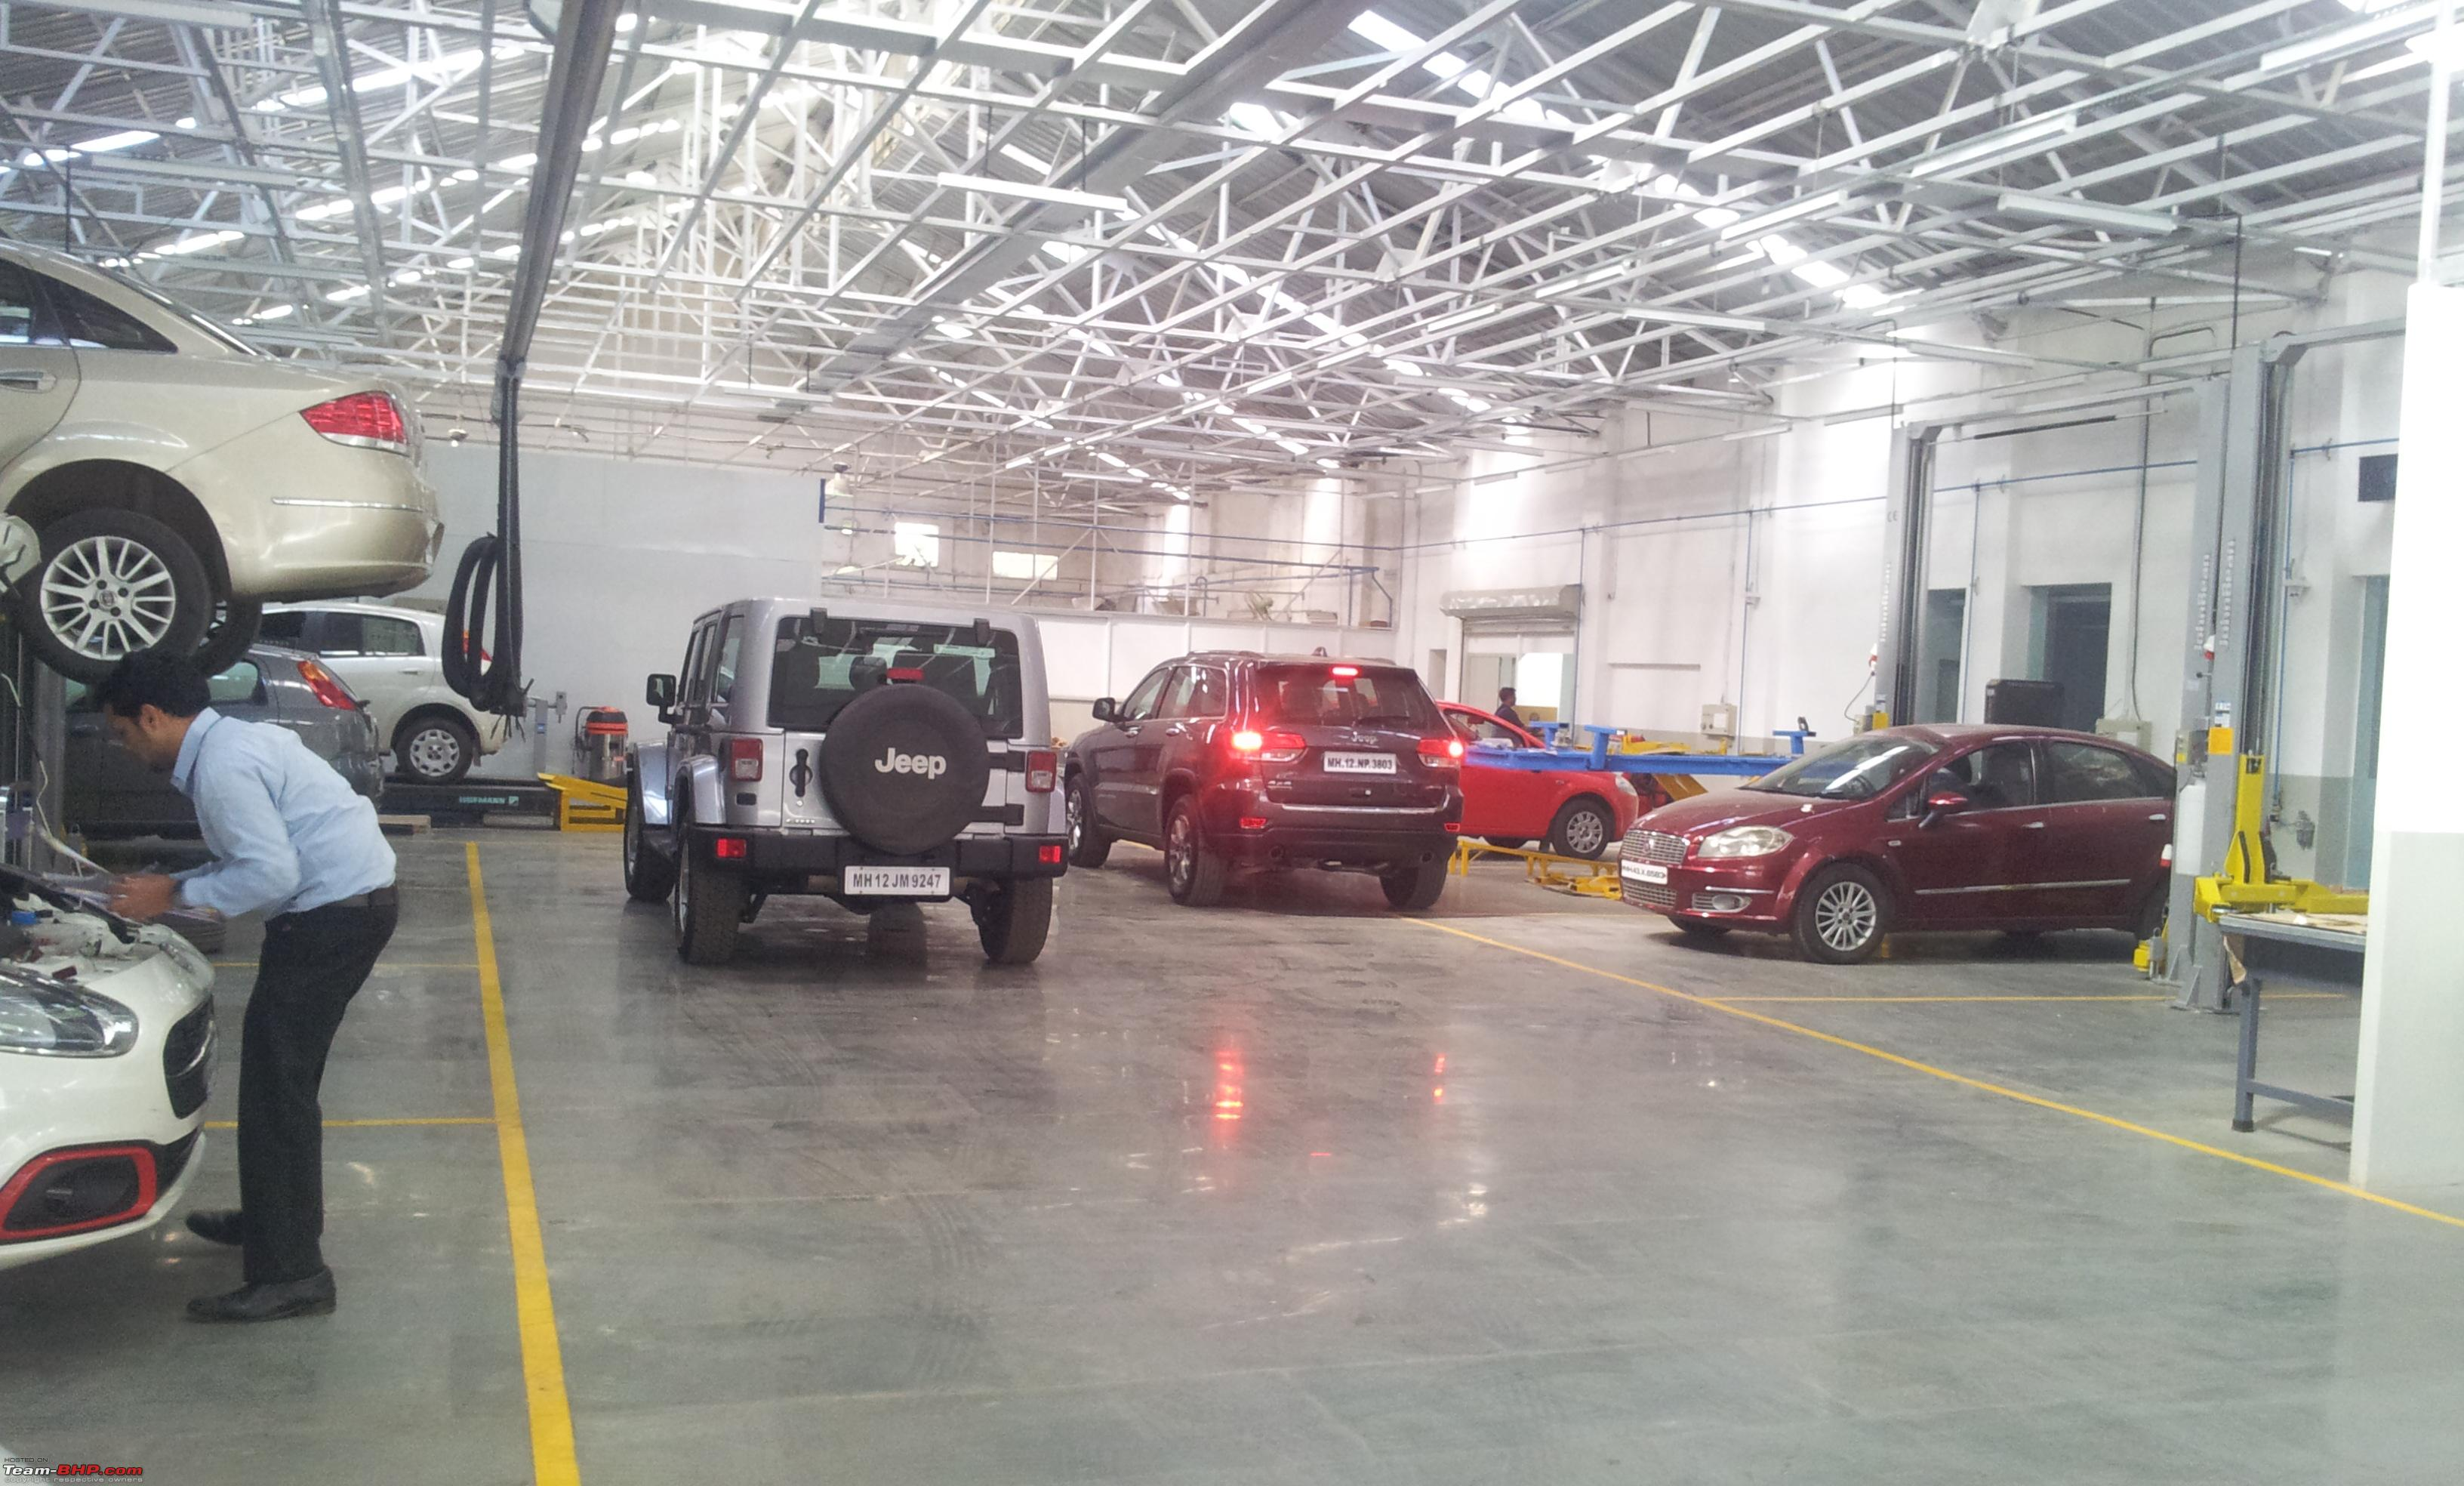 years automobiles experience india limited over saint the gobain ltd pvt ranjangaon in gyproc slide pune fiat midc